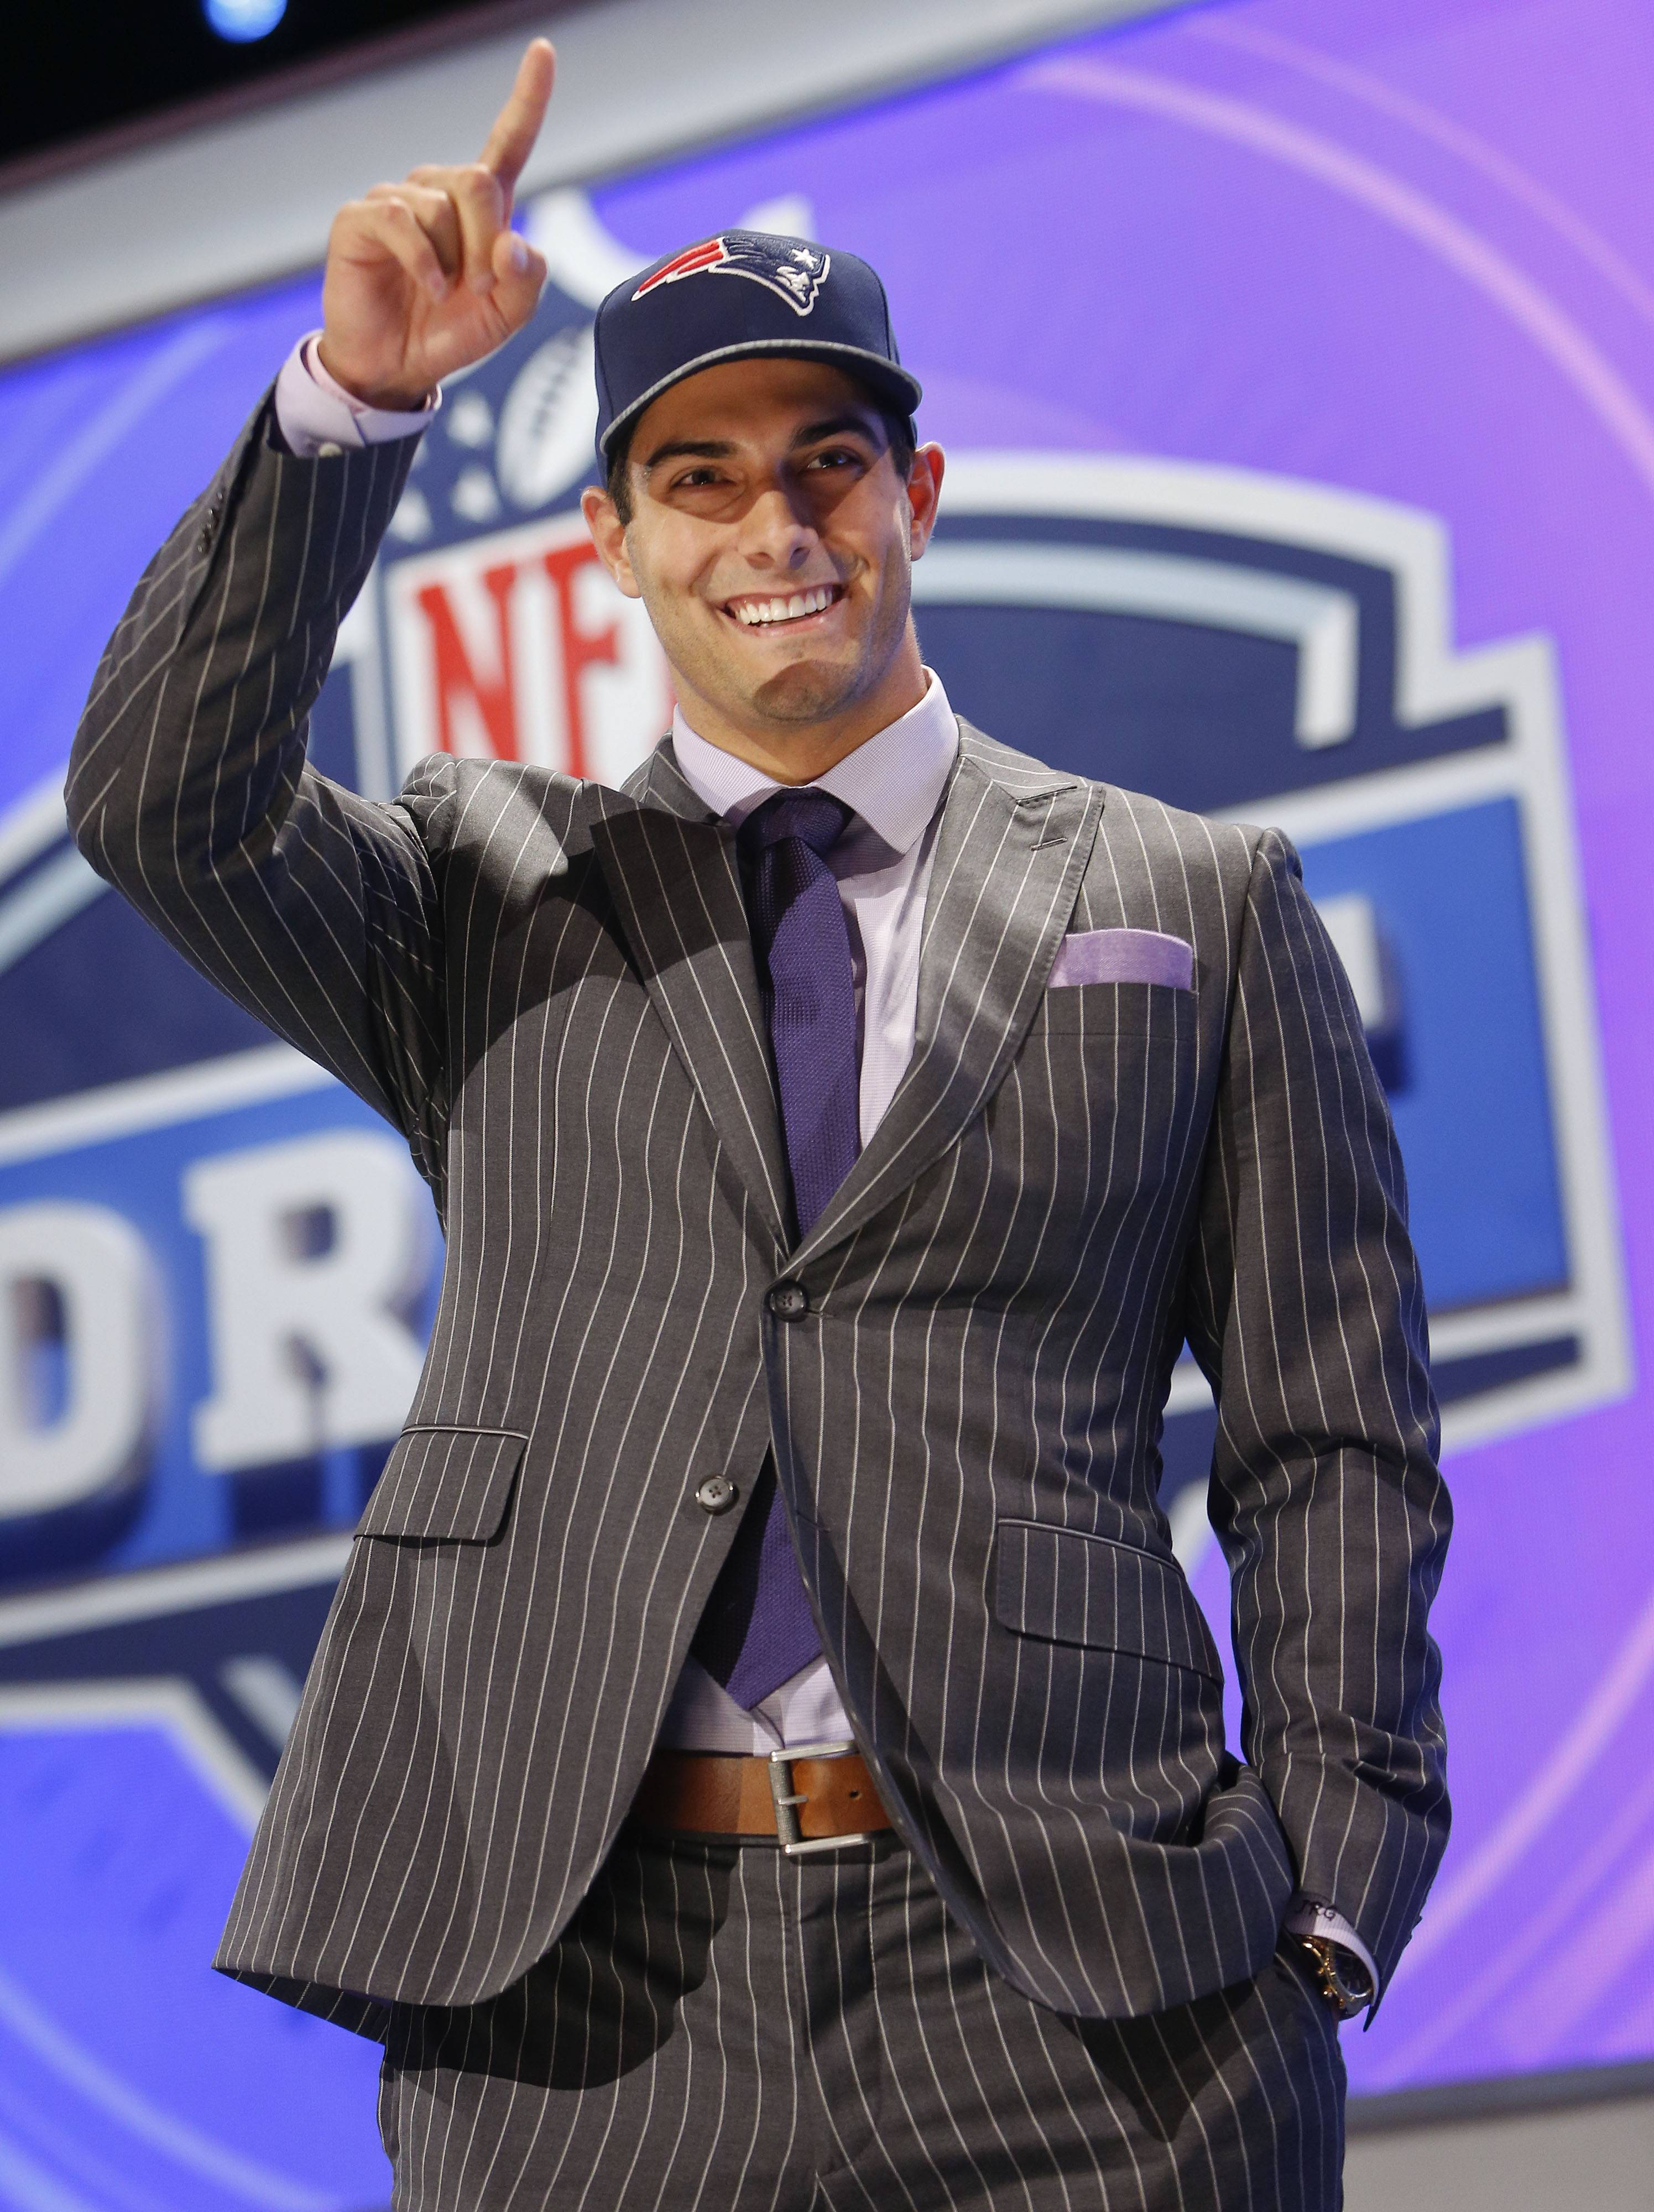 Eastern Illinois quarterback Jimmy Garoppolo reacts after being selected as the 62nd pick by the New England Patriots in the second round of the 2014 NFL Draft in New York.